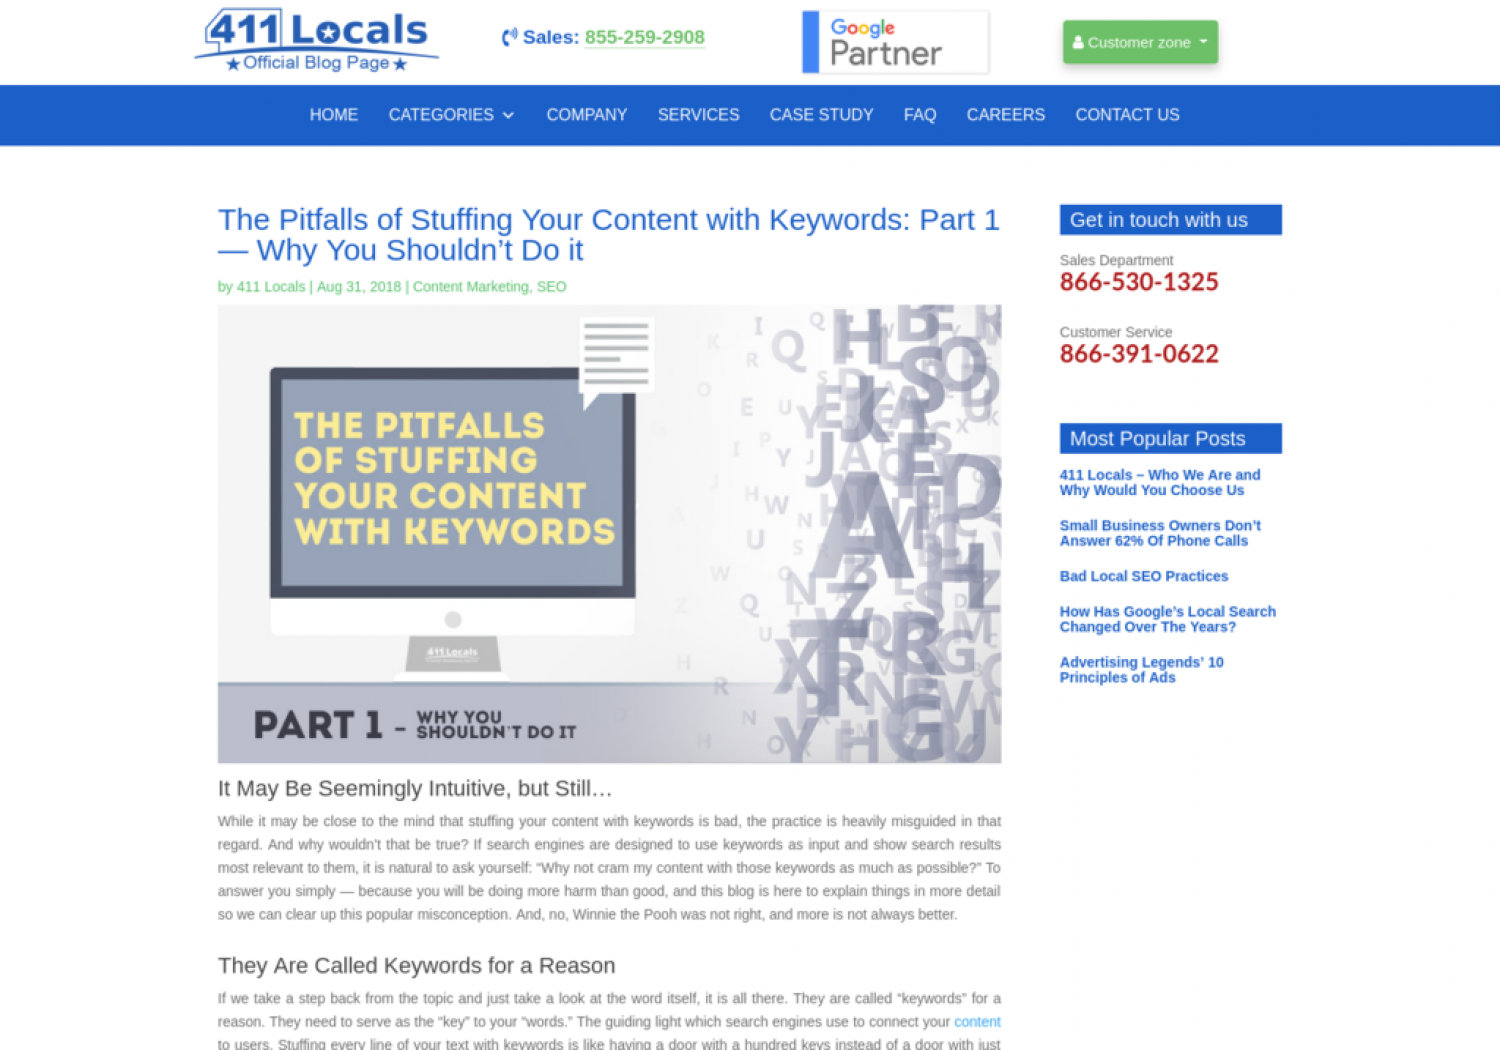 The Pitfalls of Stuffing Your Content with Keywords: Part 1 — Why You Shouldn't Do it Infographic